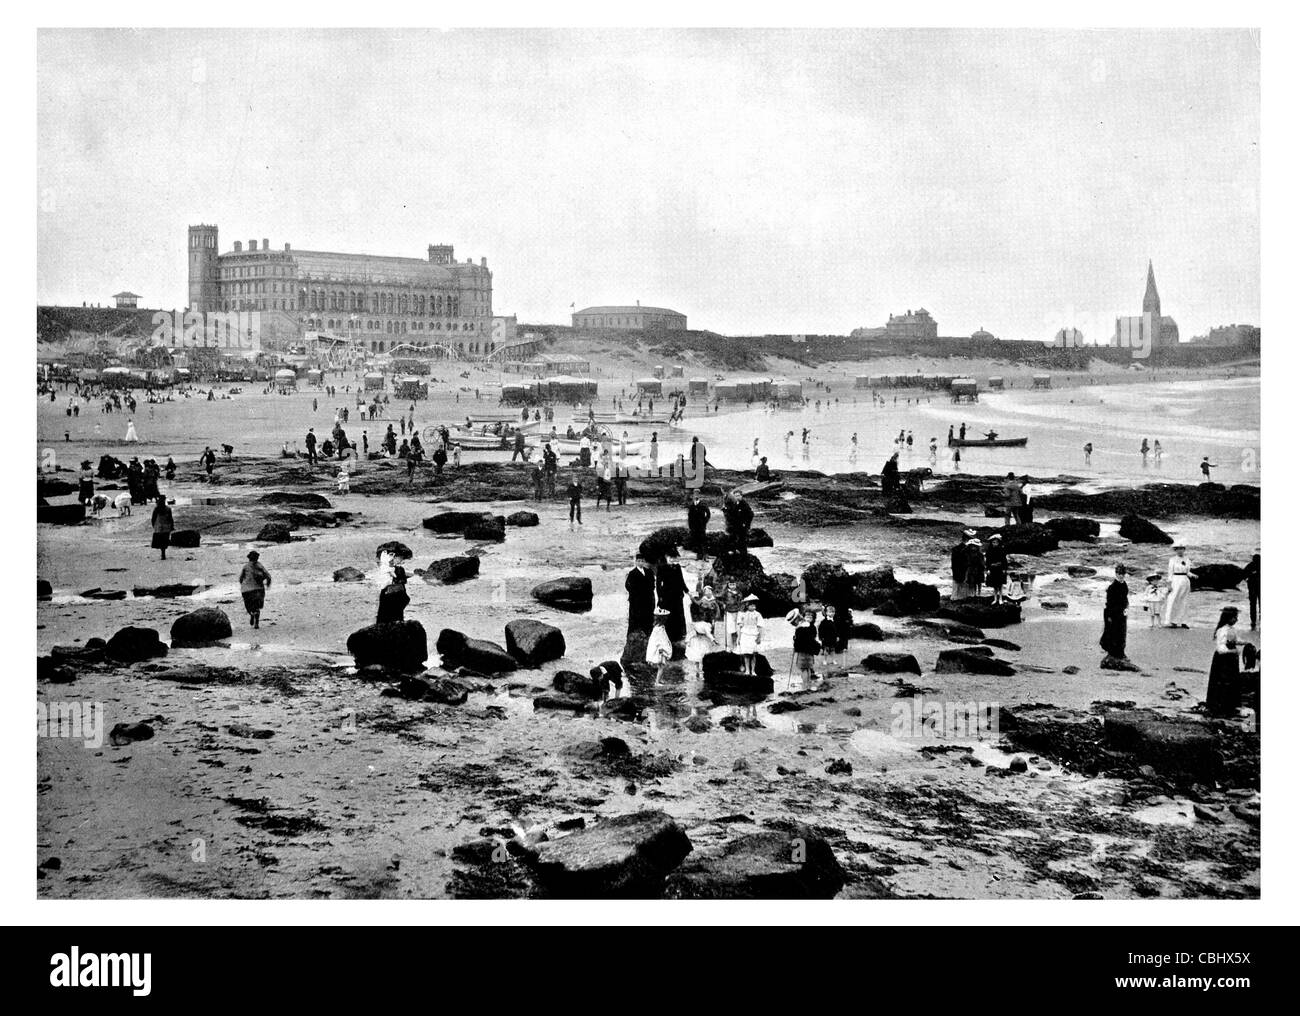 Tynemouth Tyne Wear England Grand Parade Undersea aquatic park Seal Cove rock pool beach paddling Victorian era - Stock Image